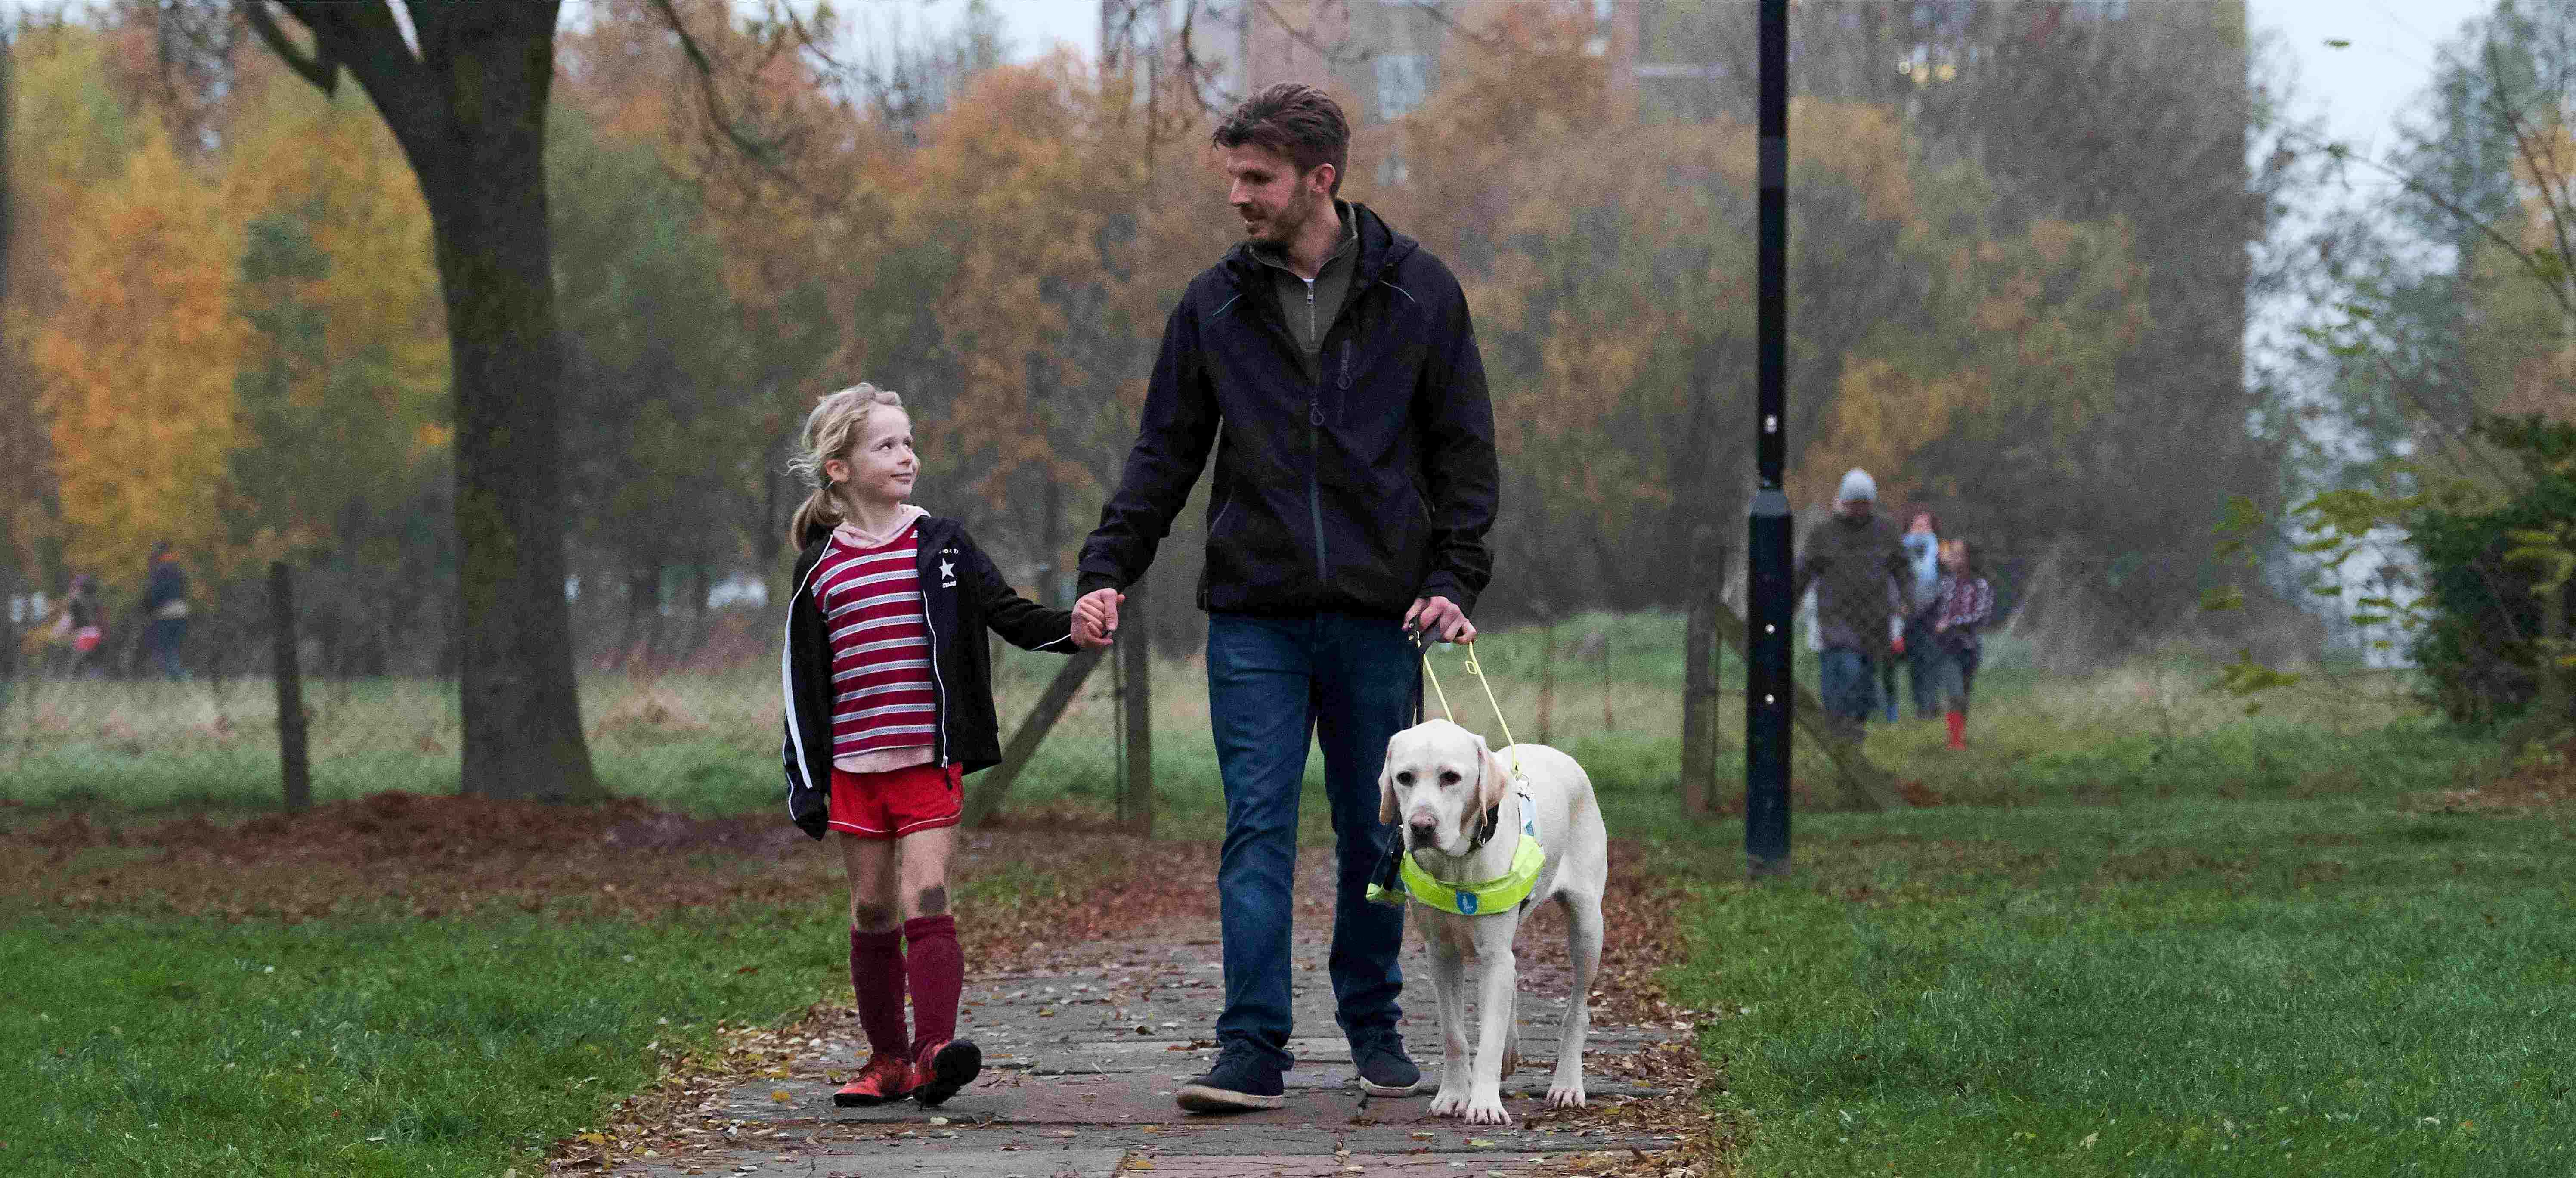 Alex walks down a park path with his guide dog and daughter who is wearing a football kit with muddy knees. They smile at eachother.